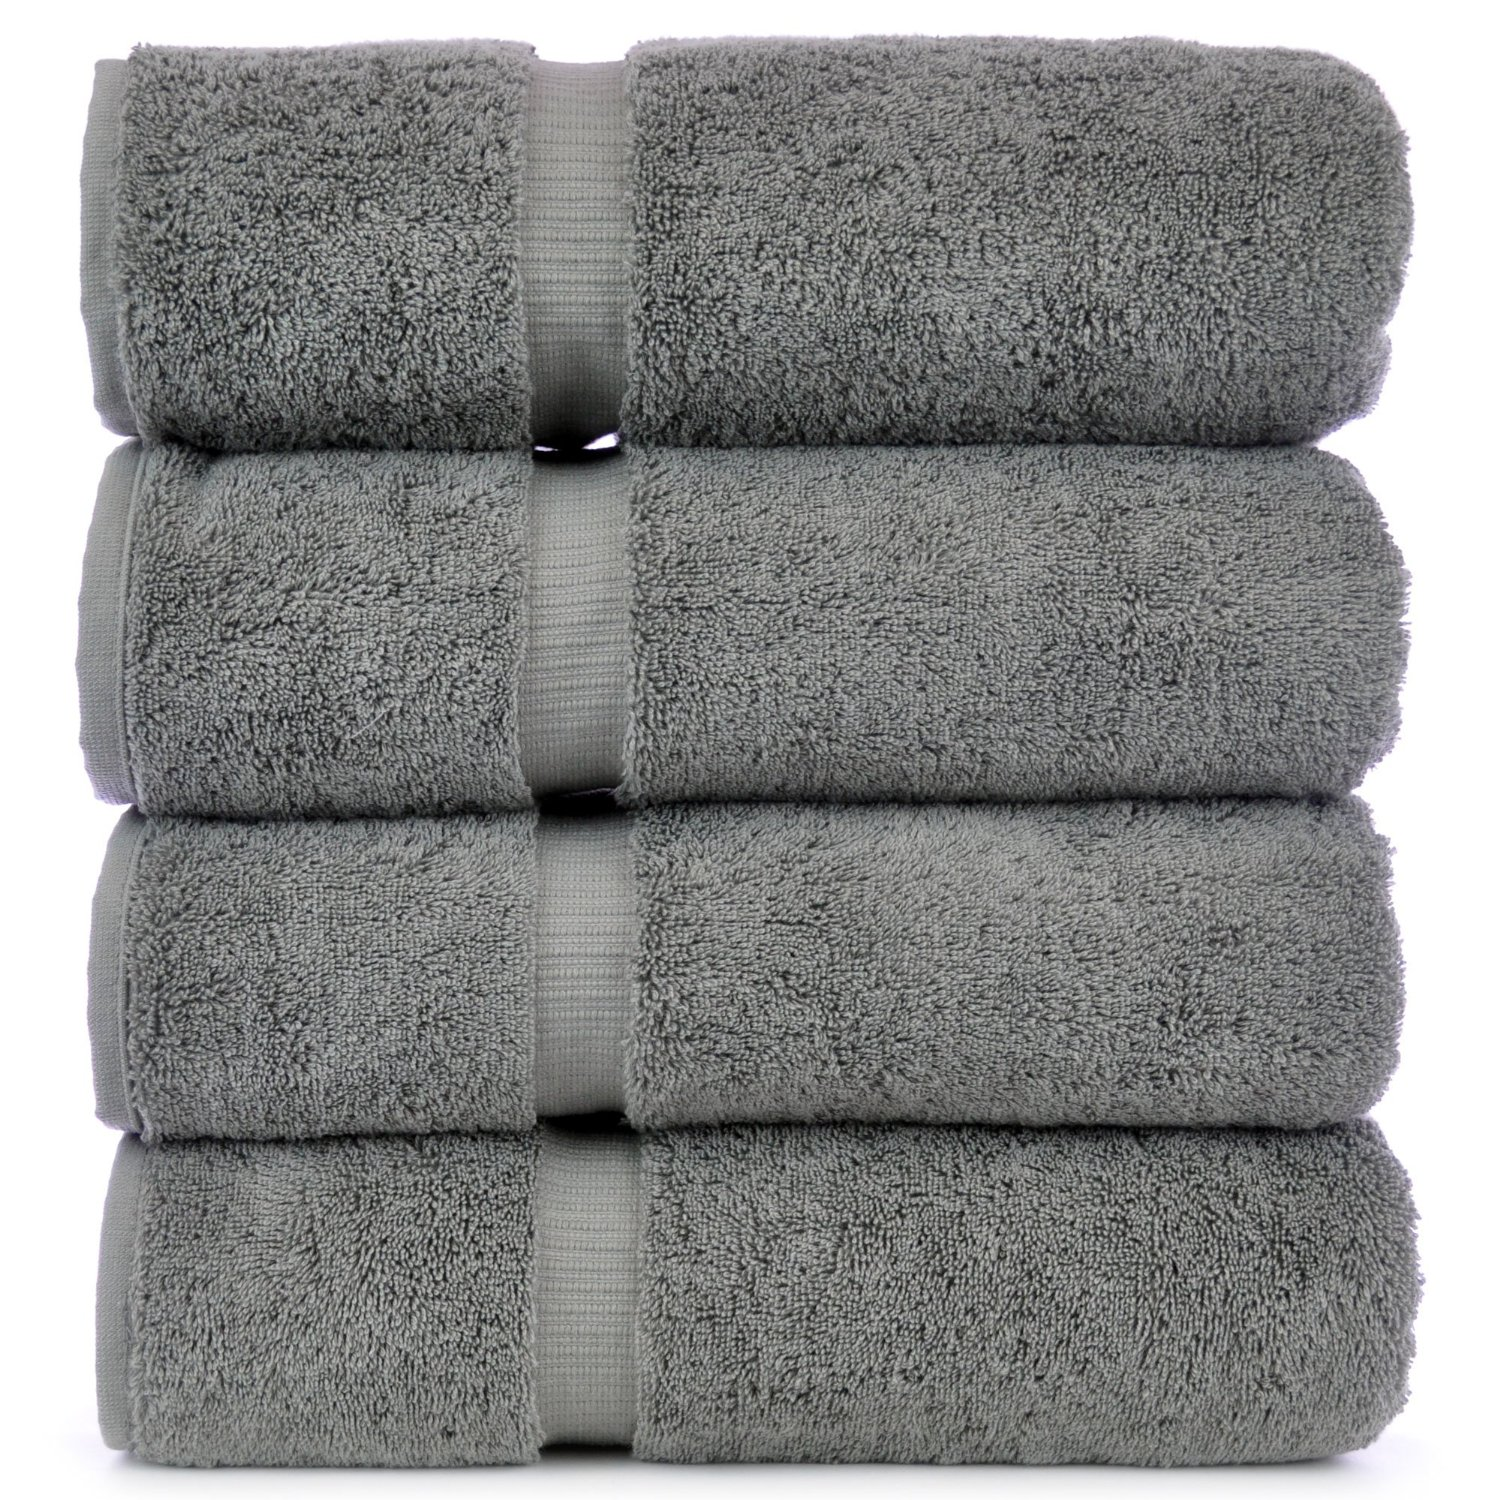 Luxury Hotel & Spa Towel 100% Genuine Turkish Cotton (Bath Towel  – Set of 4, Gray) review